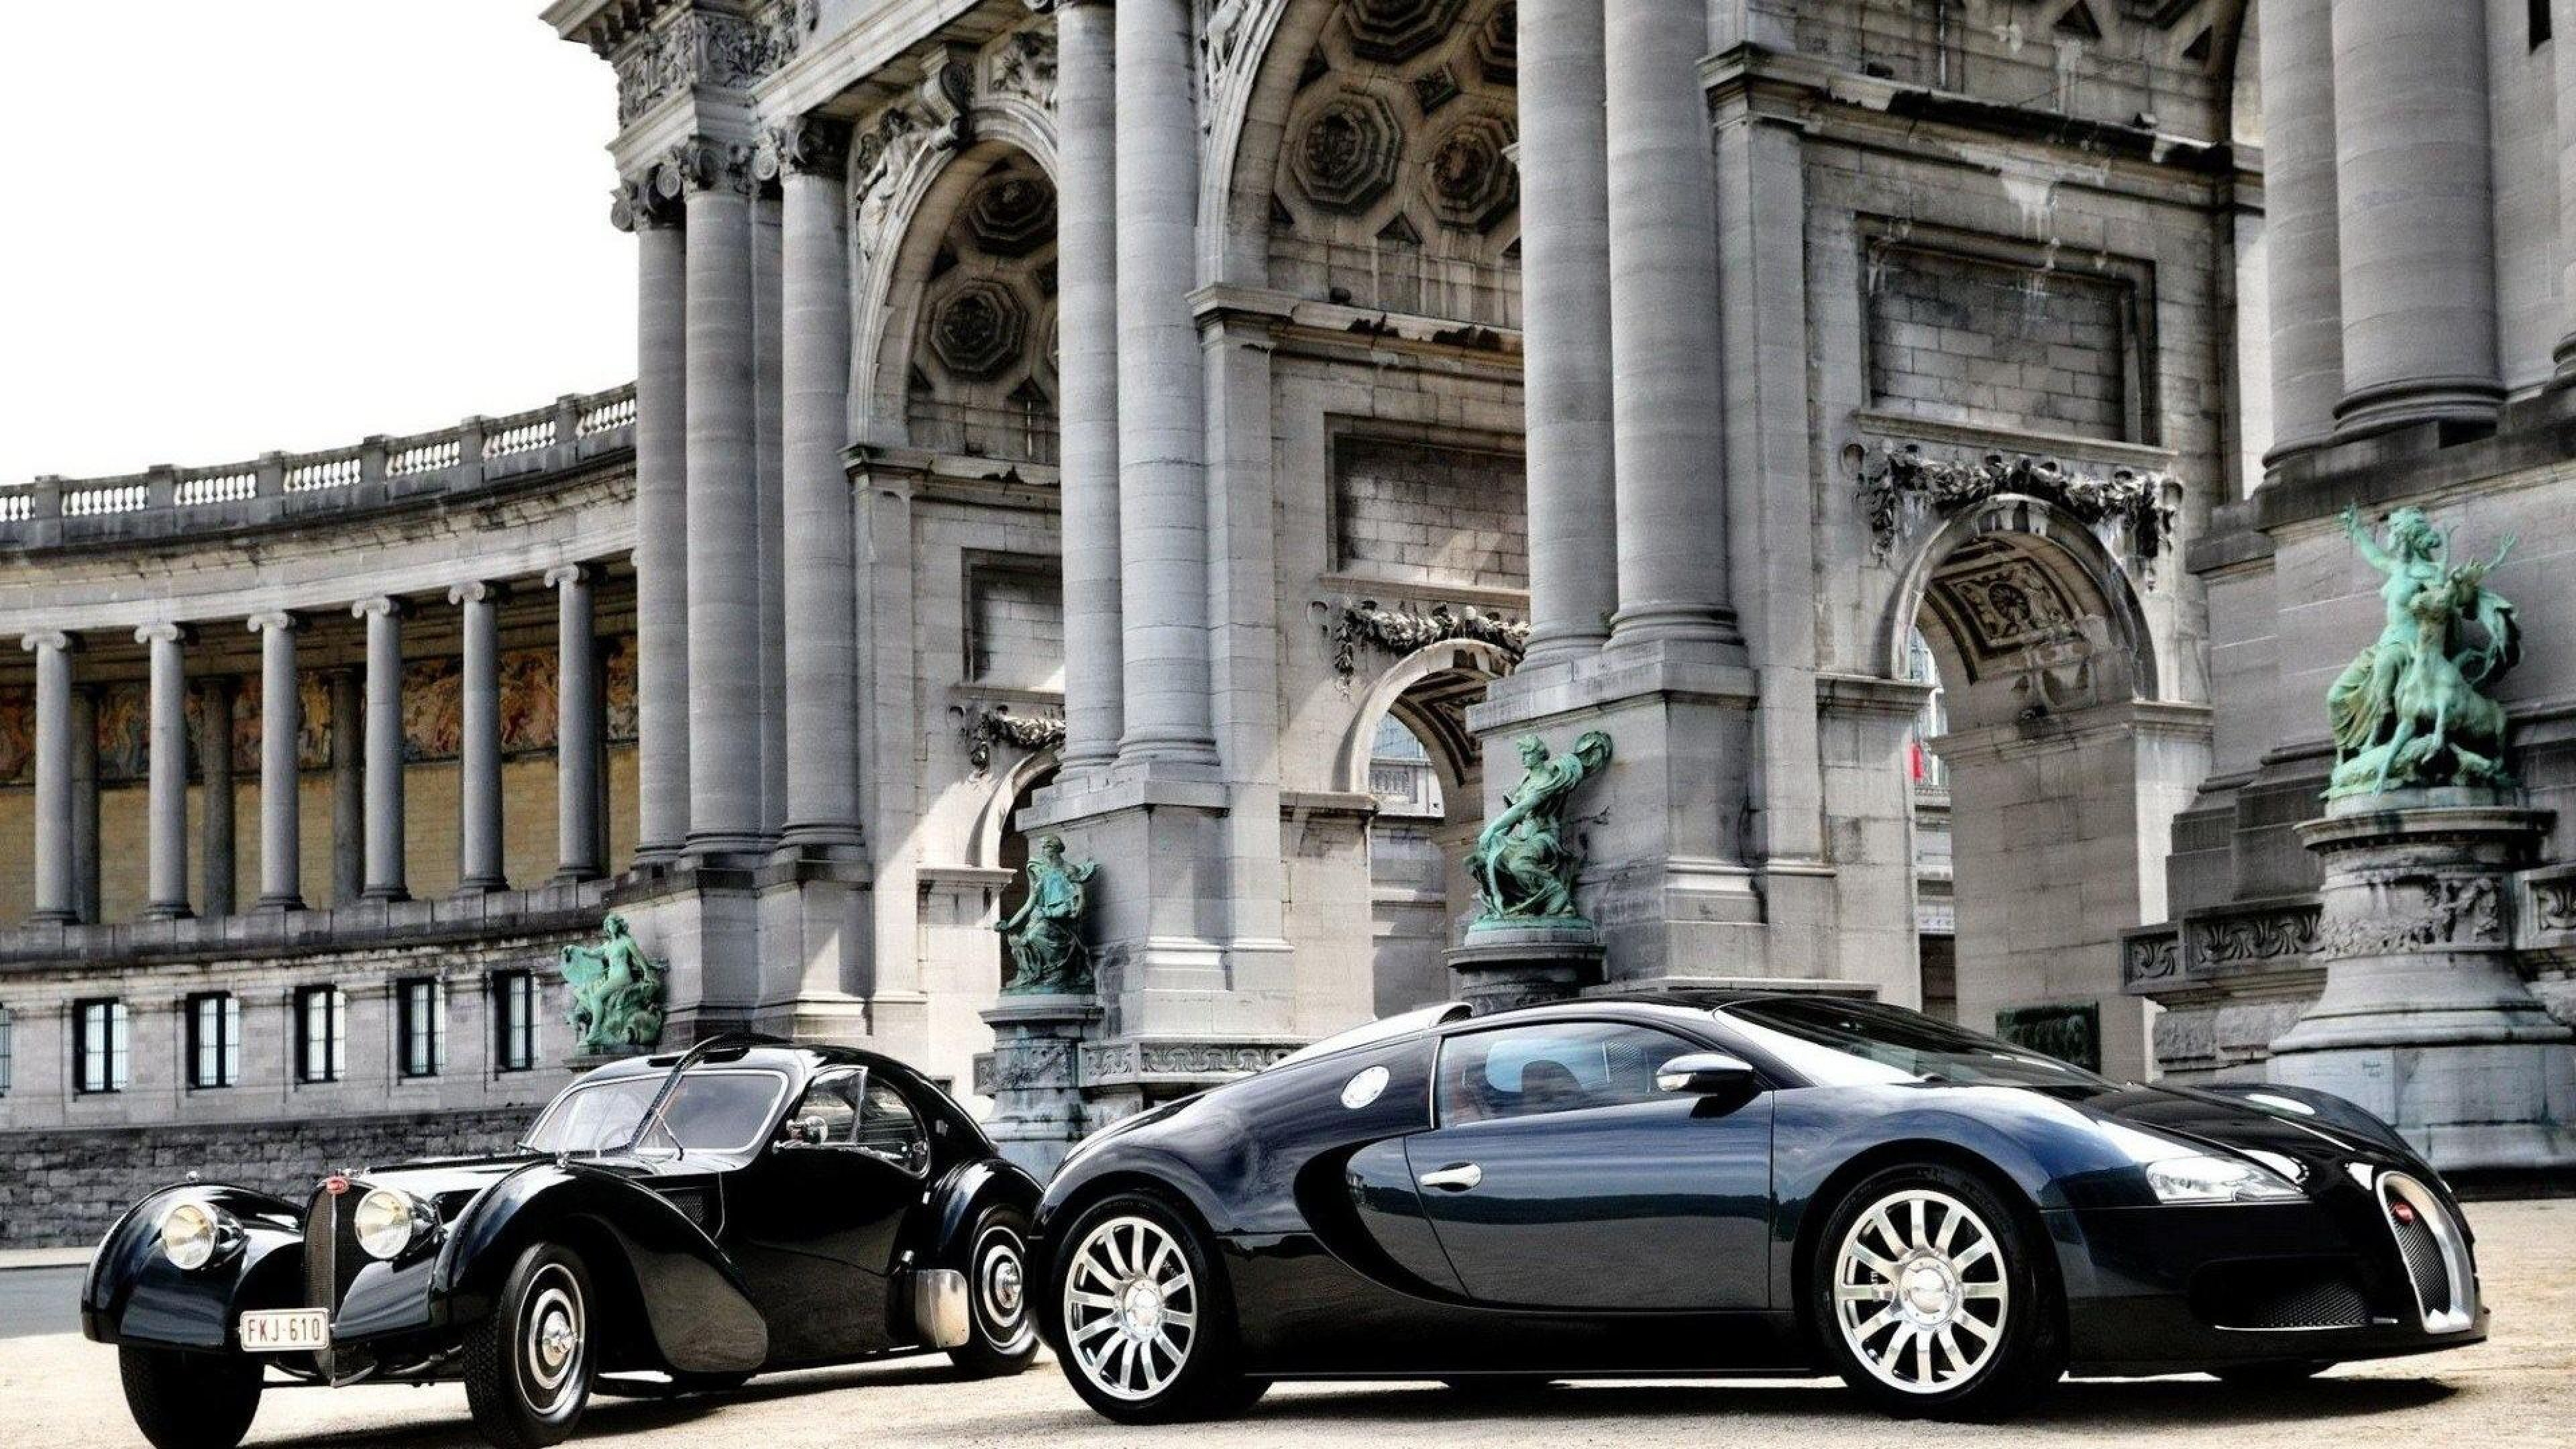 cars_bugatti_veyron_luxury_black_parked_building_77621_3840x2160